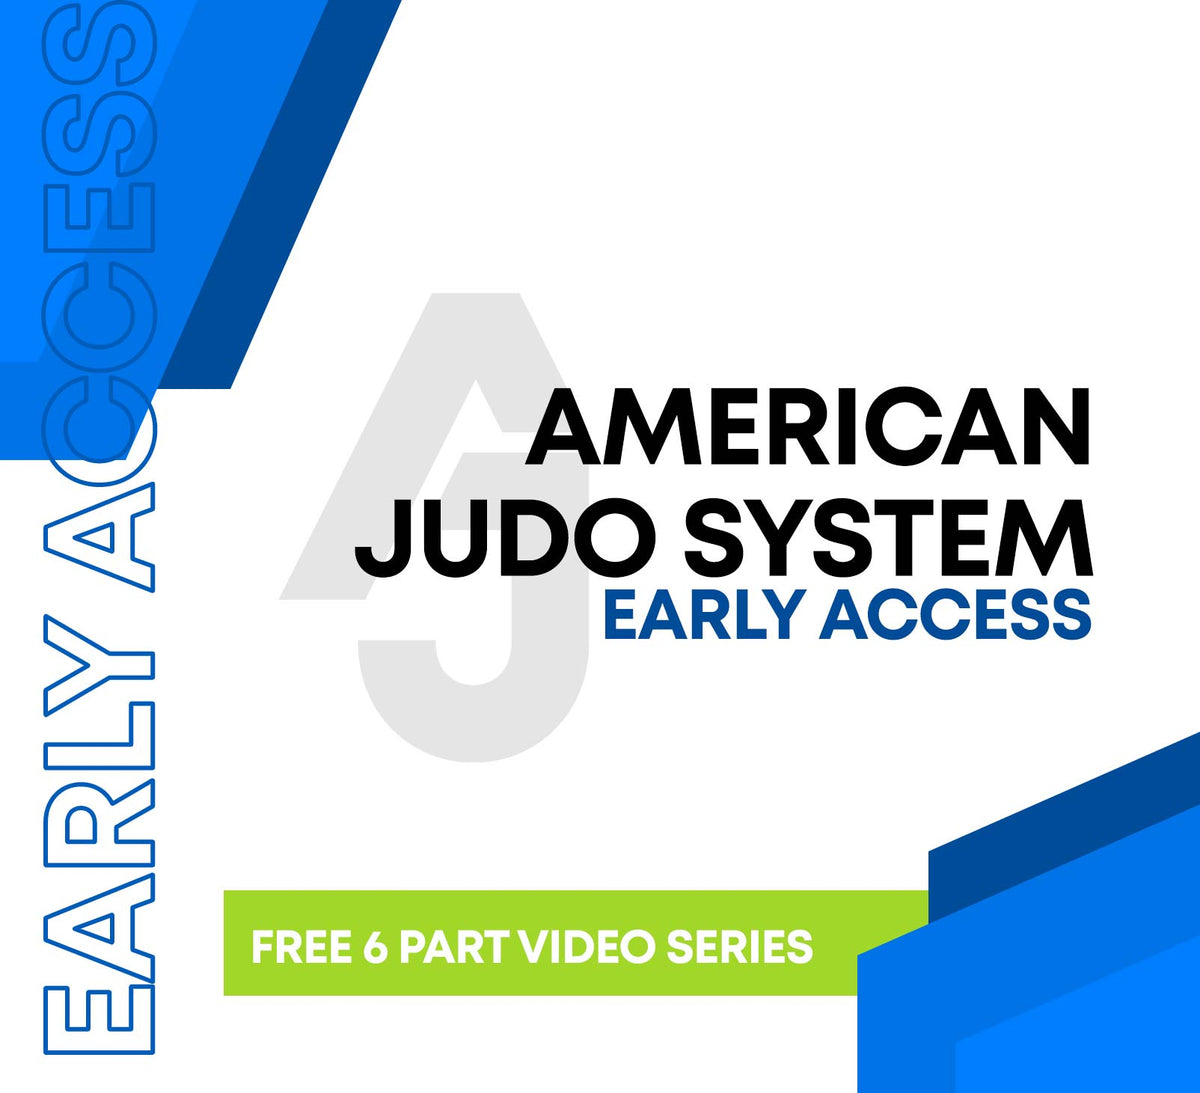 American Judo System - Early Access Special